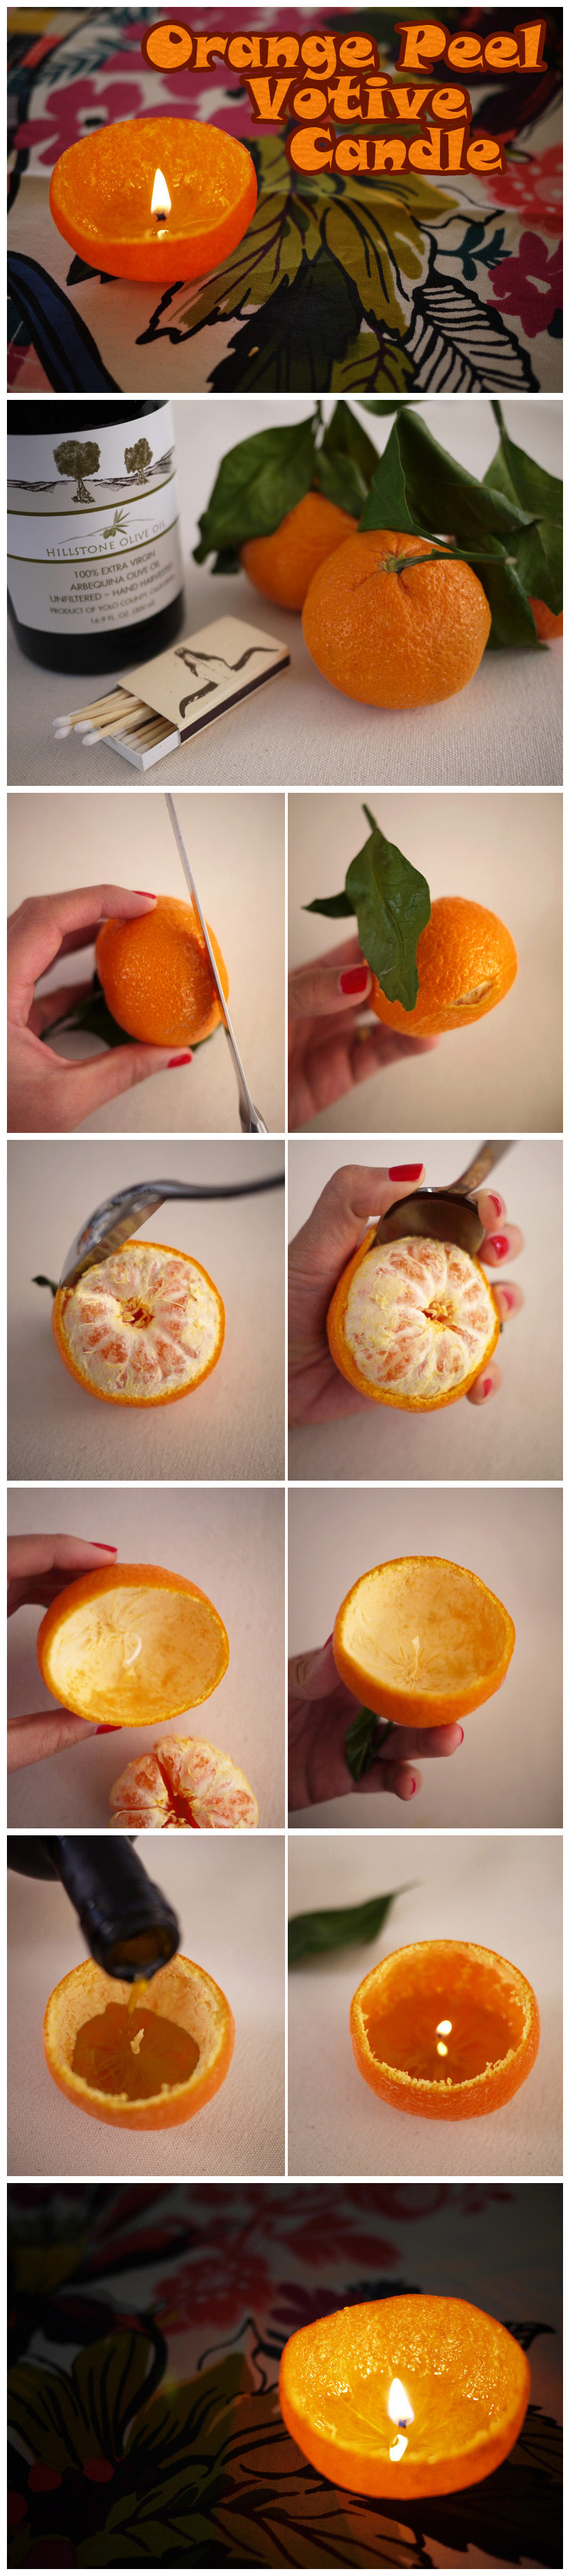 how to make orange peel candle